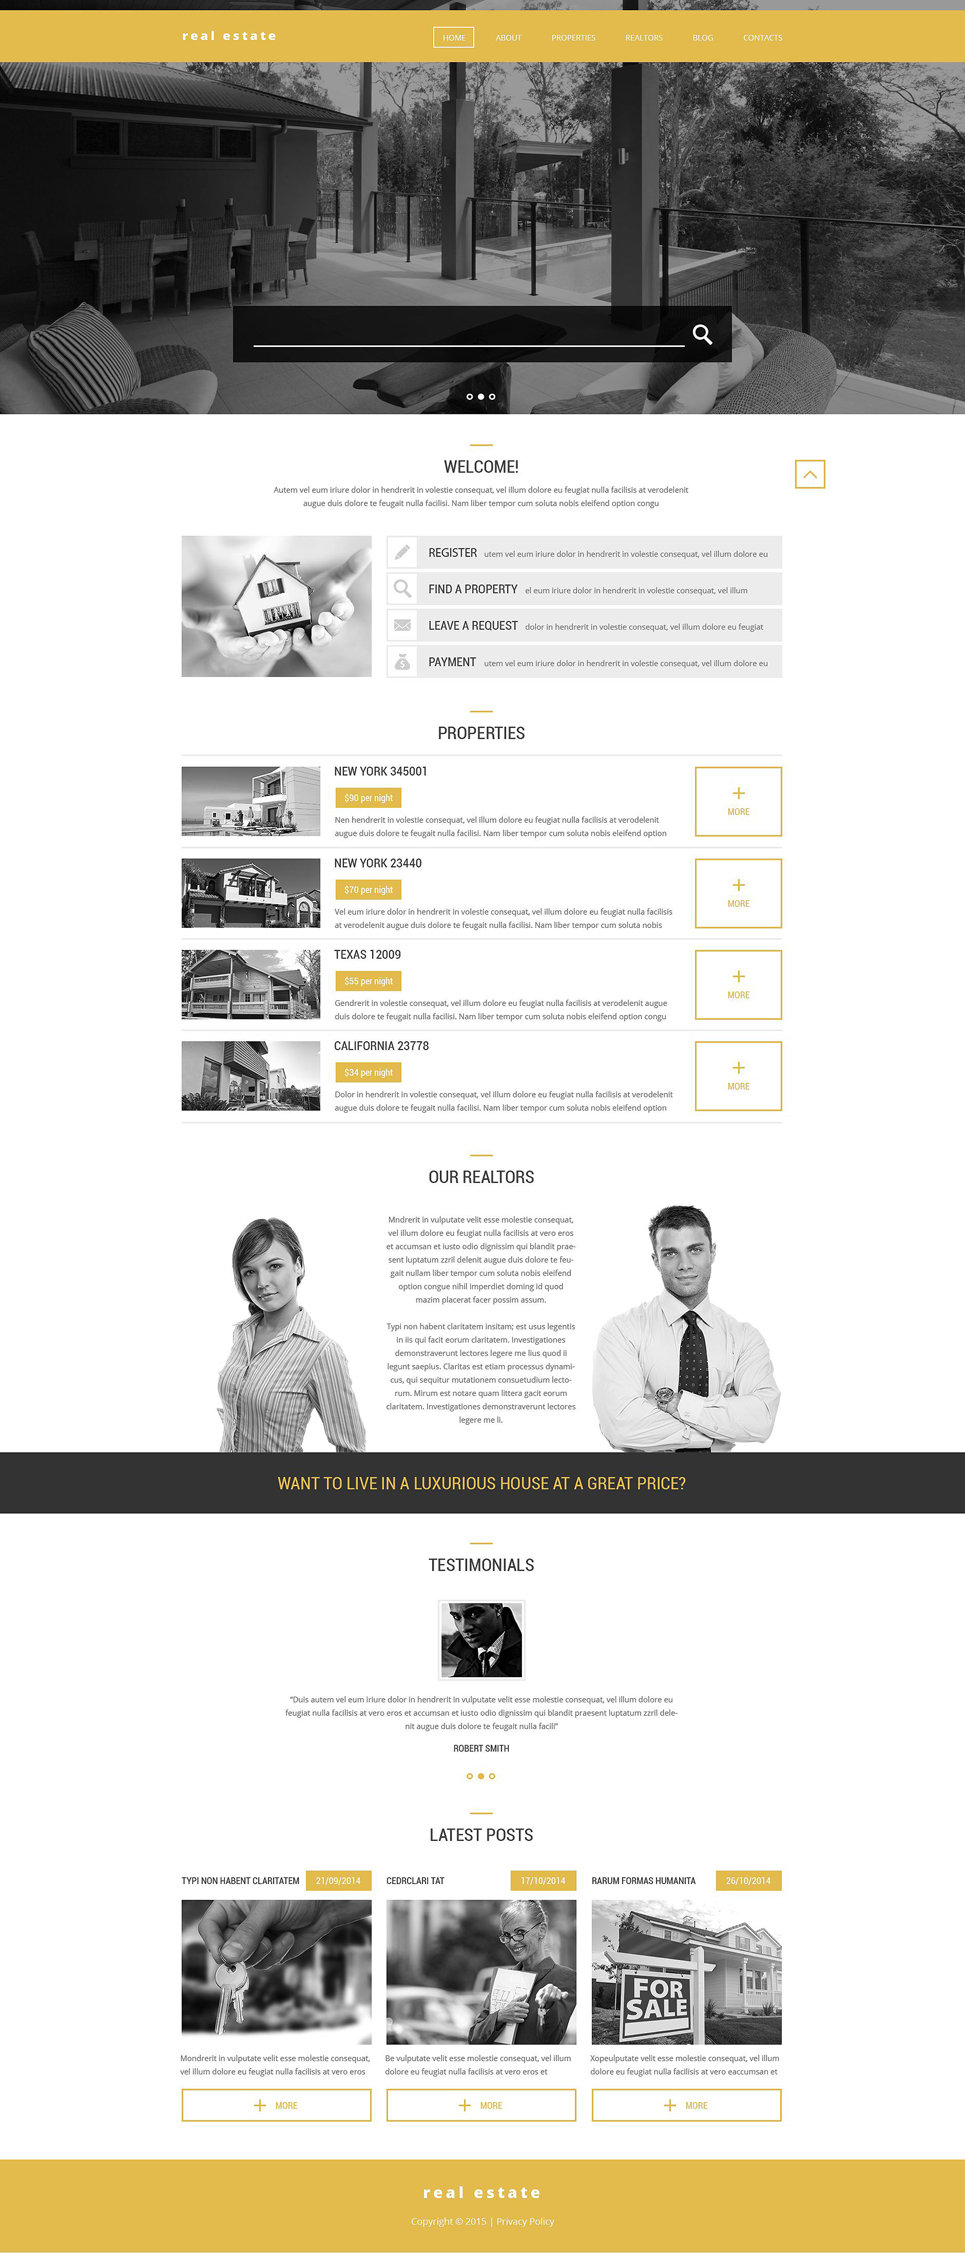 Realtors' Help WordPress Theme (WordPress theme for realtors and real estate agents) Item Picture